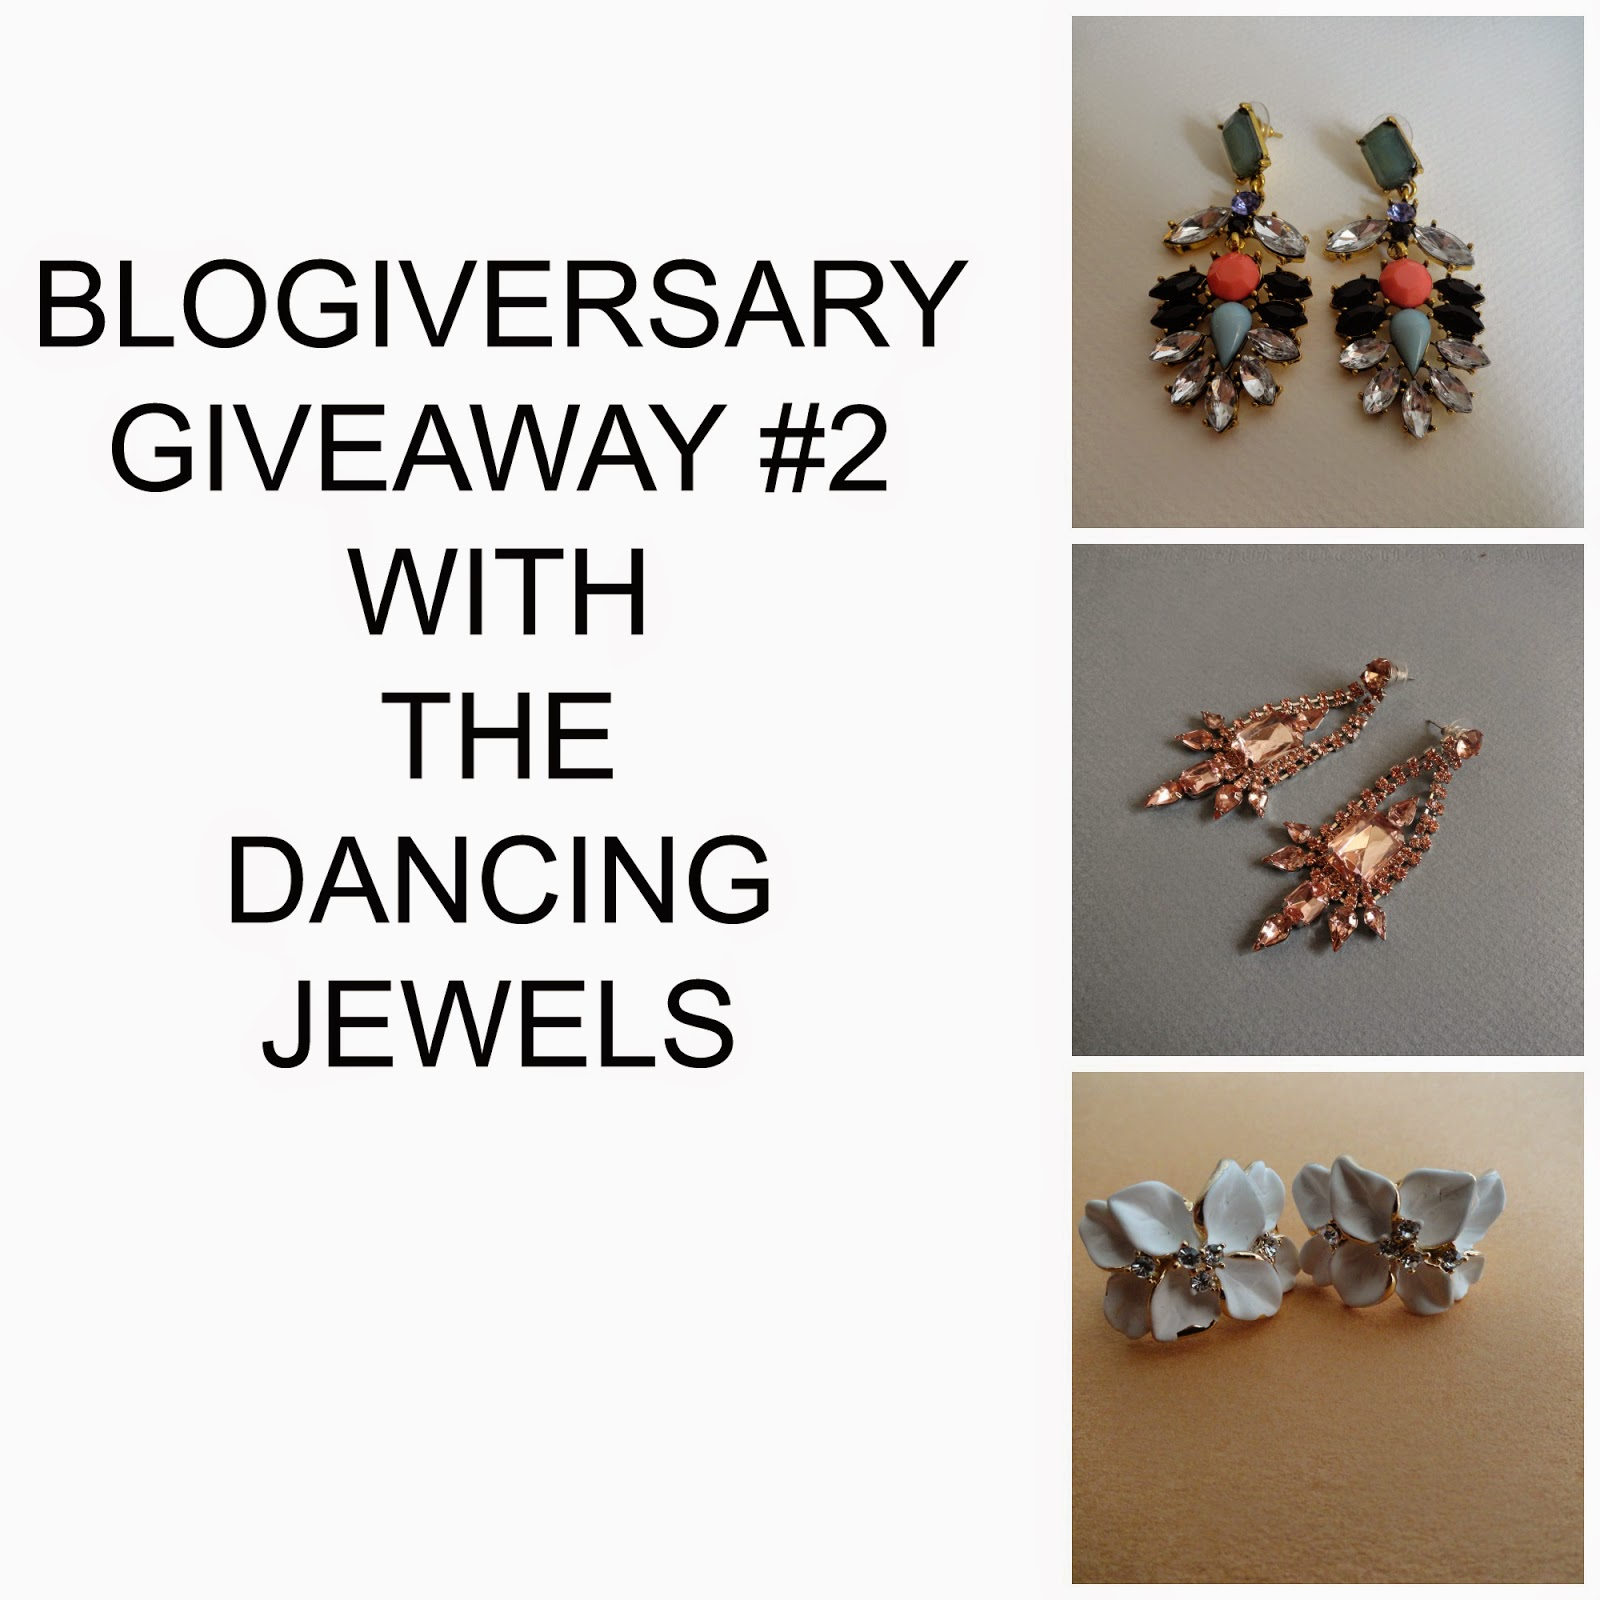 Blogiversary giveaway #2 with The Dancing Jewels. [OPEN] image